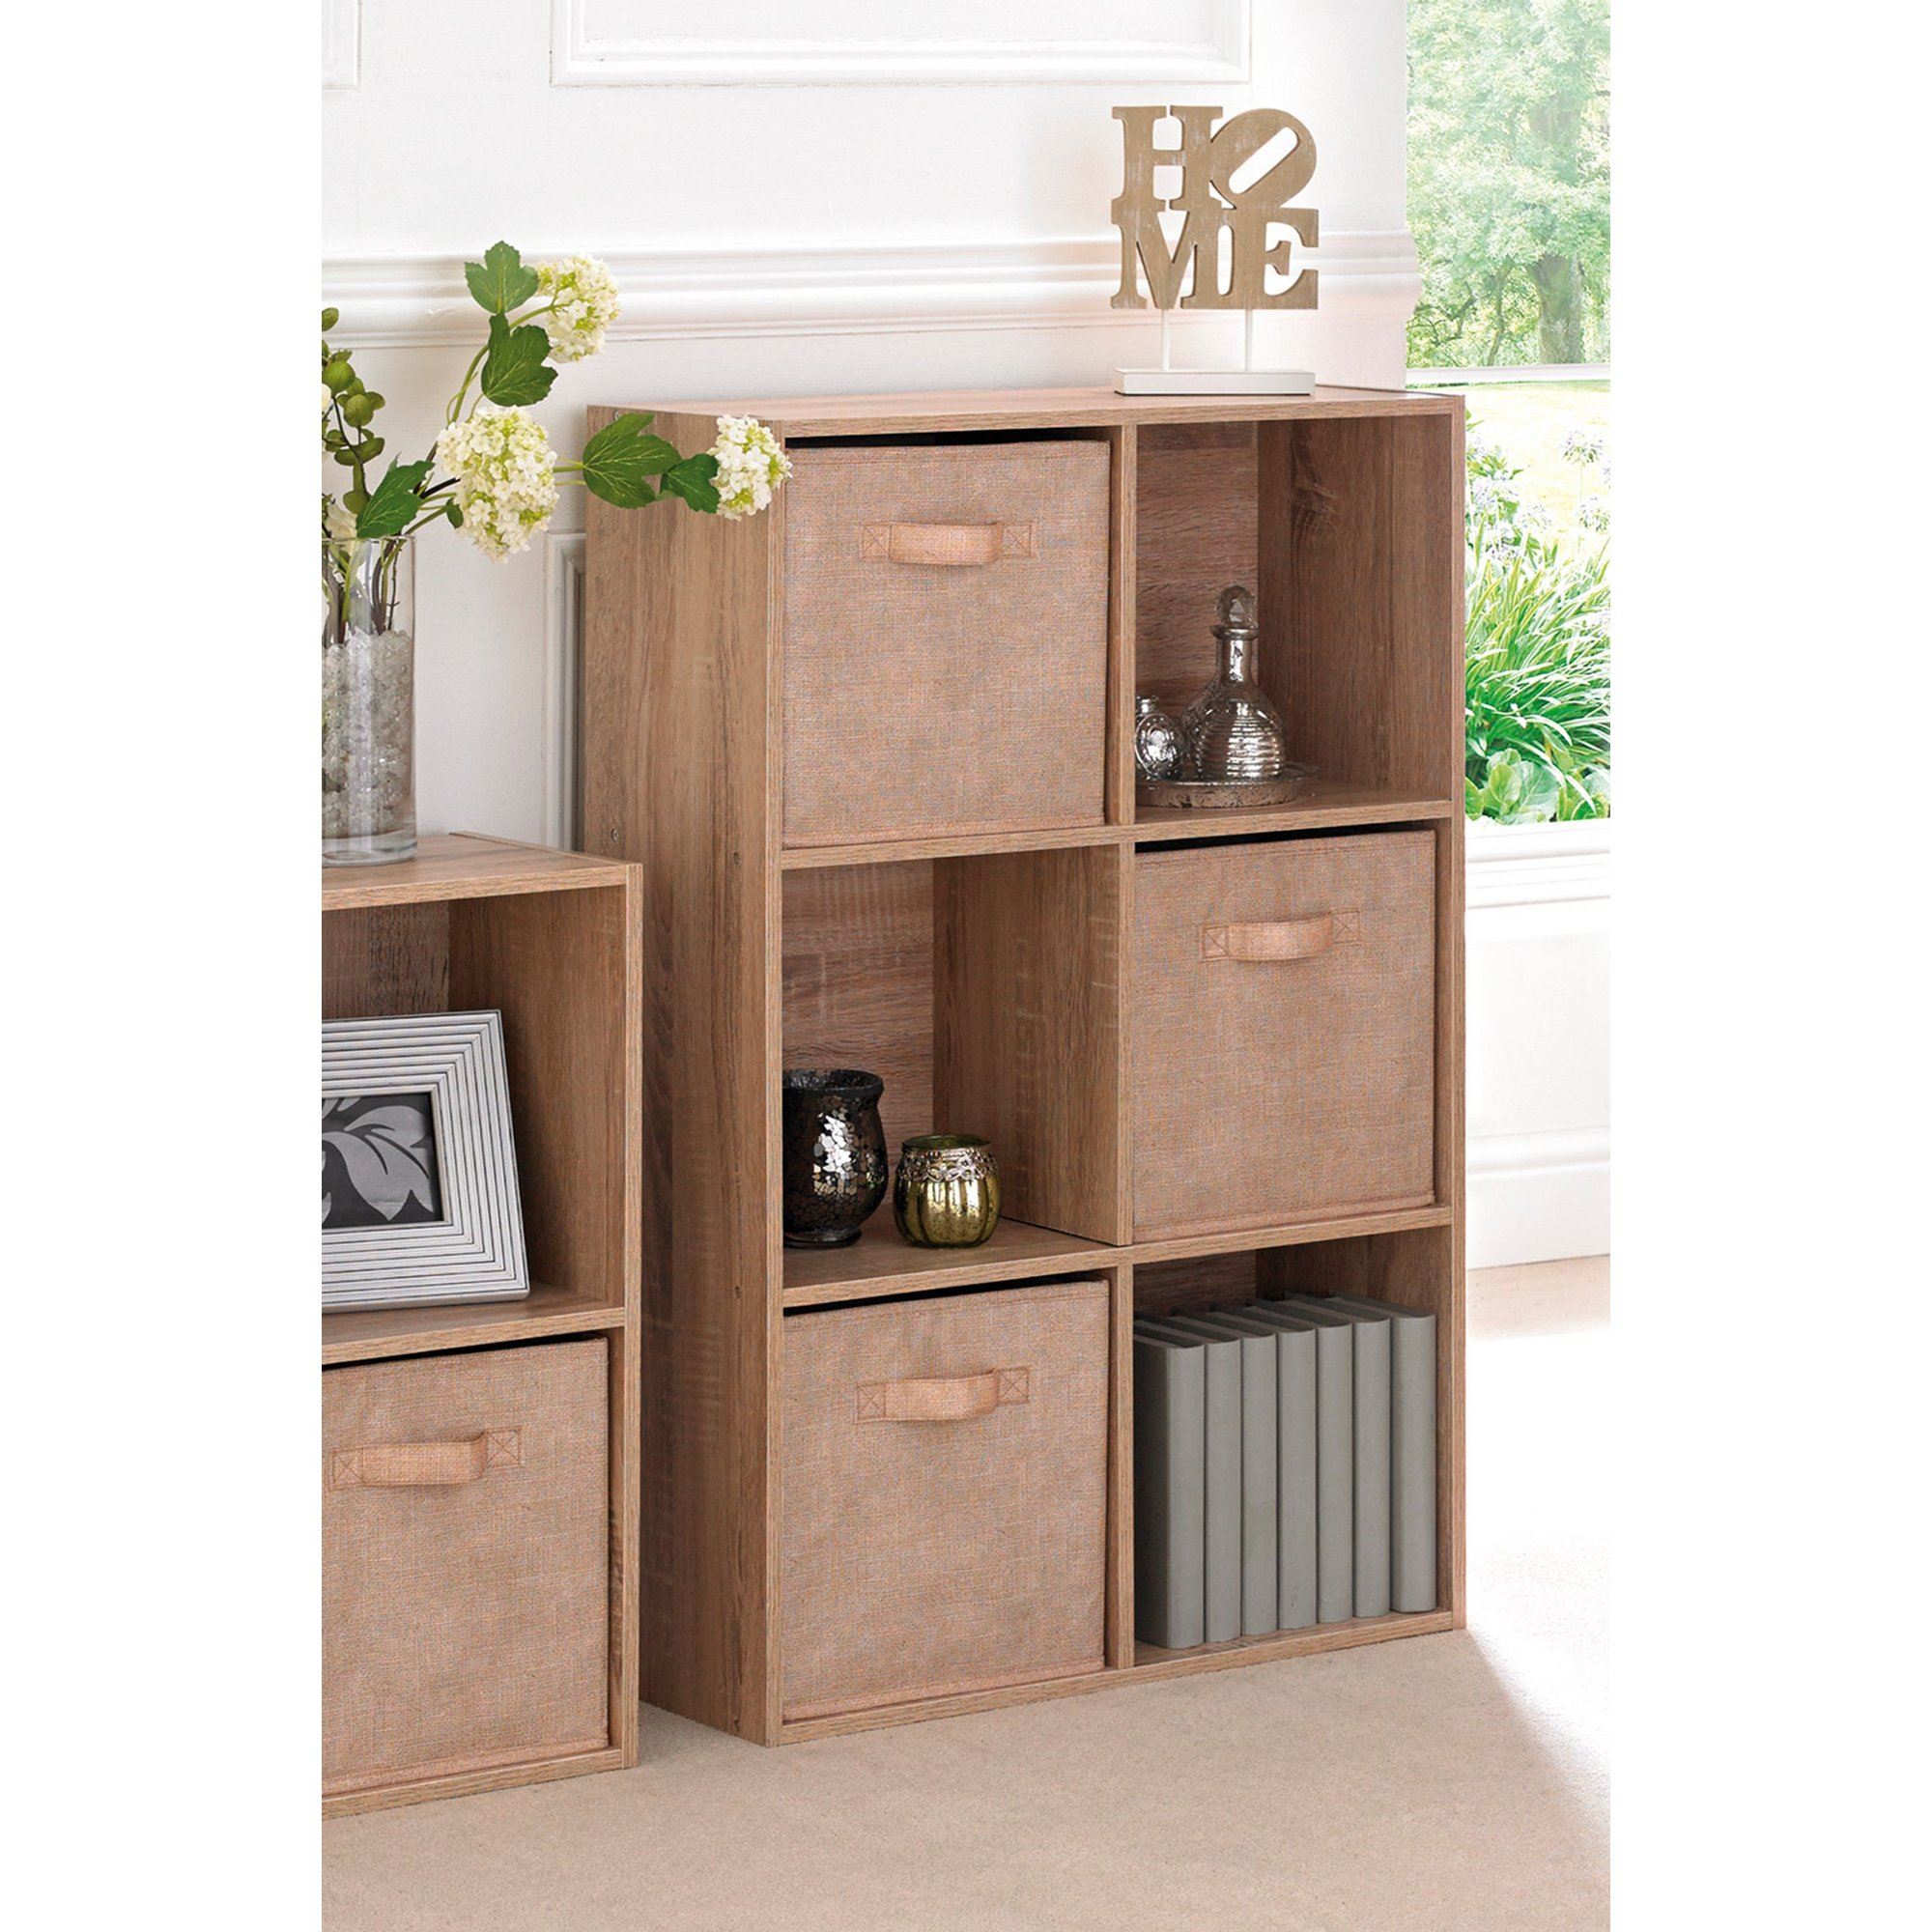 Image of 6 Cube Oak-Effect Storage Unit with Canvas Drawers